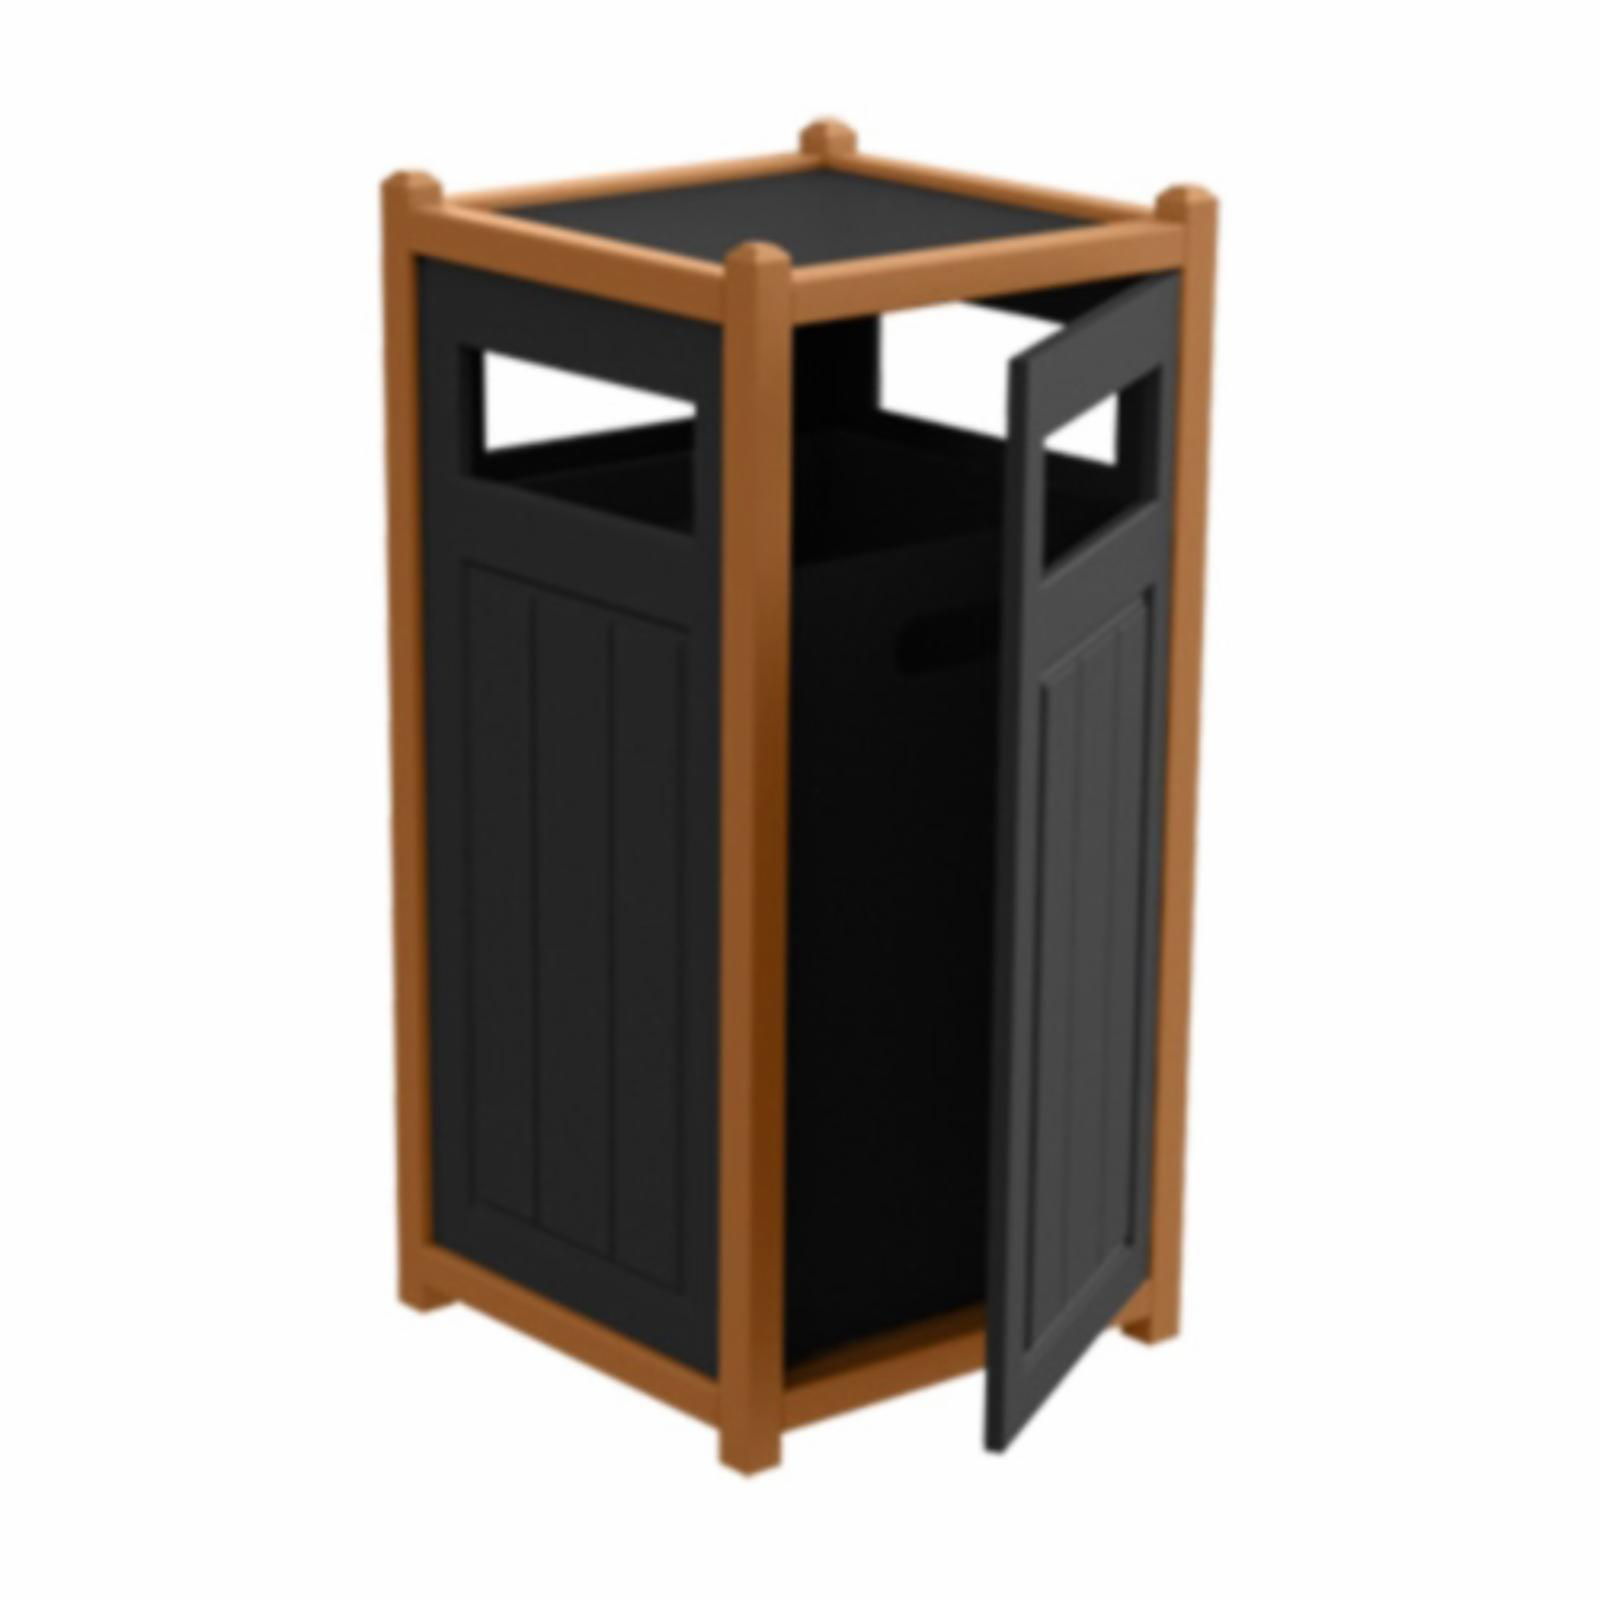 Treetop Products Two-Tone 33 Gallon Side Load Outdoor Trash Receptacle Black/Cedar - 4ZK4739-BK/CD